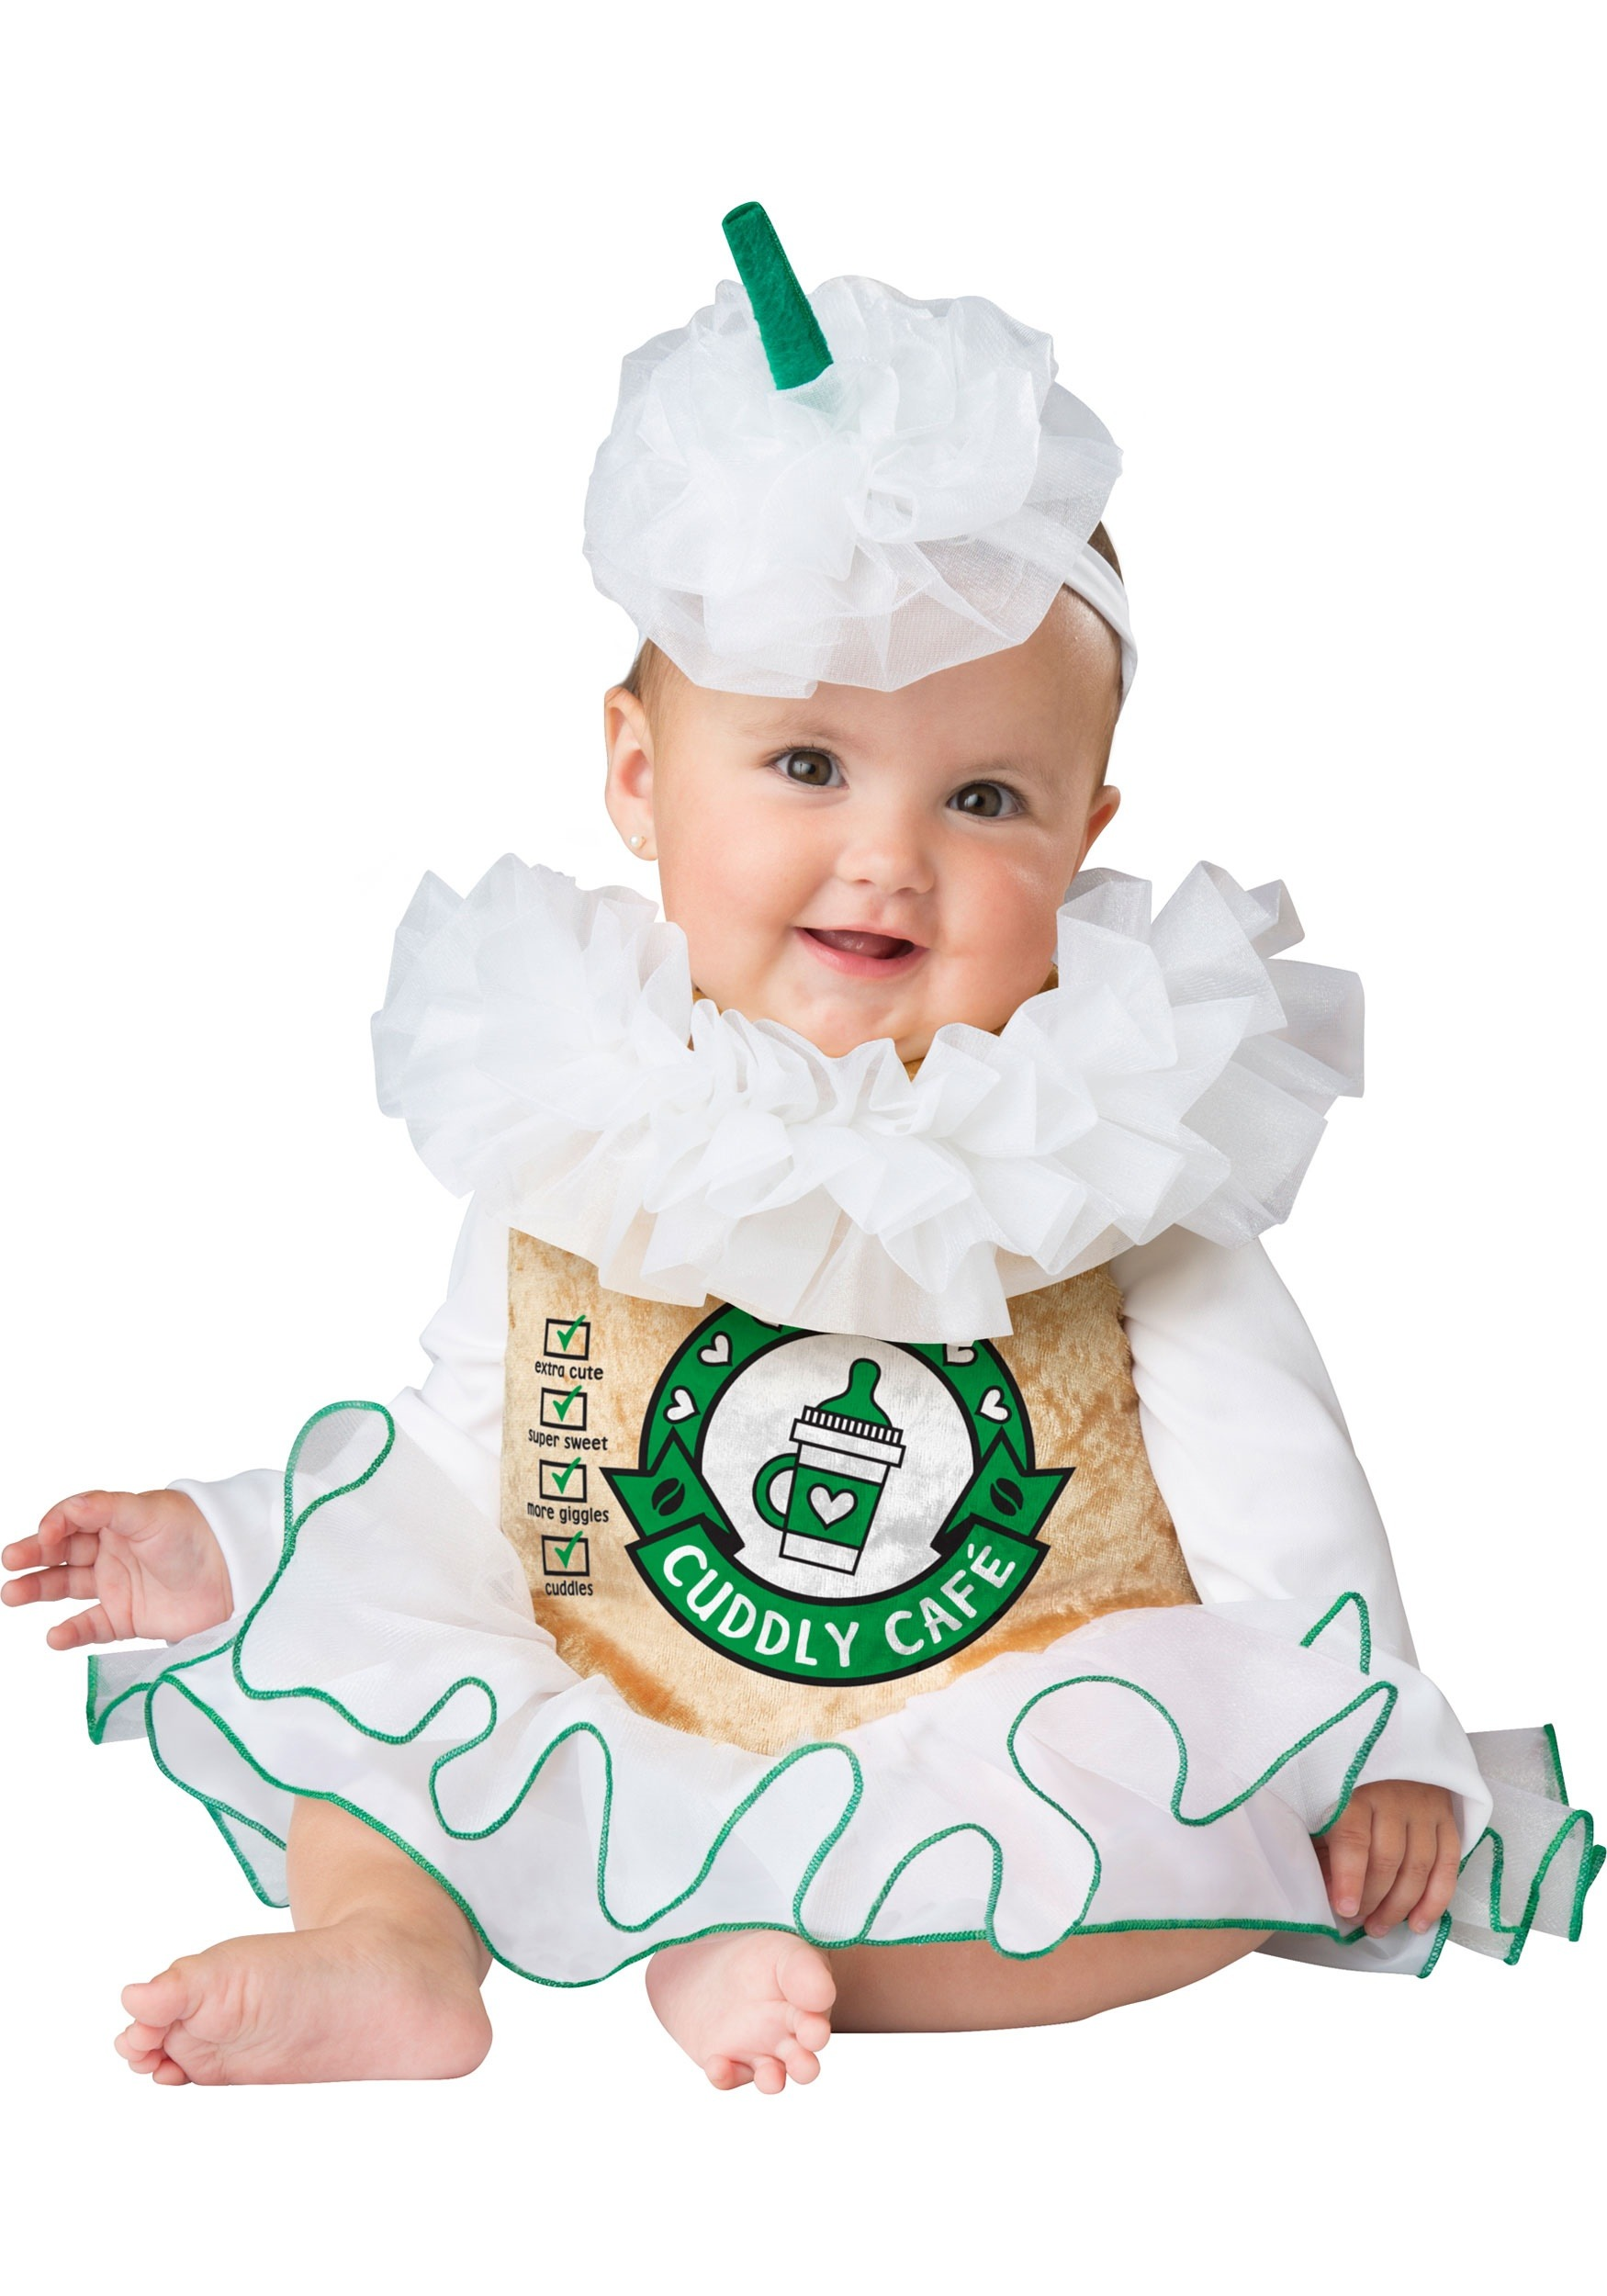 Food costumes adult kids food and drink halloween costume ideas cuddly cappuccino infant costume solutioingenieria Images